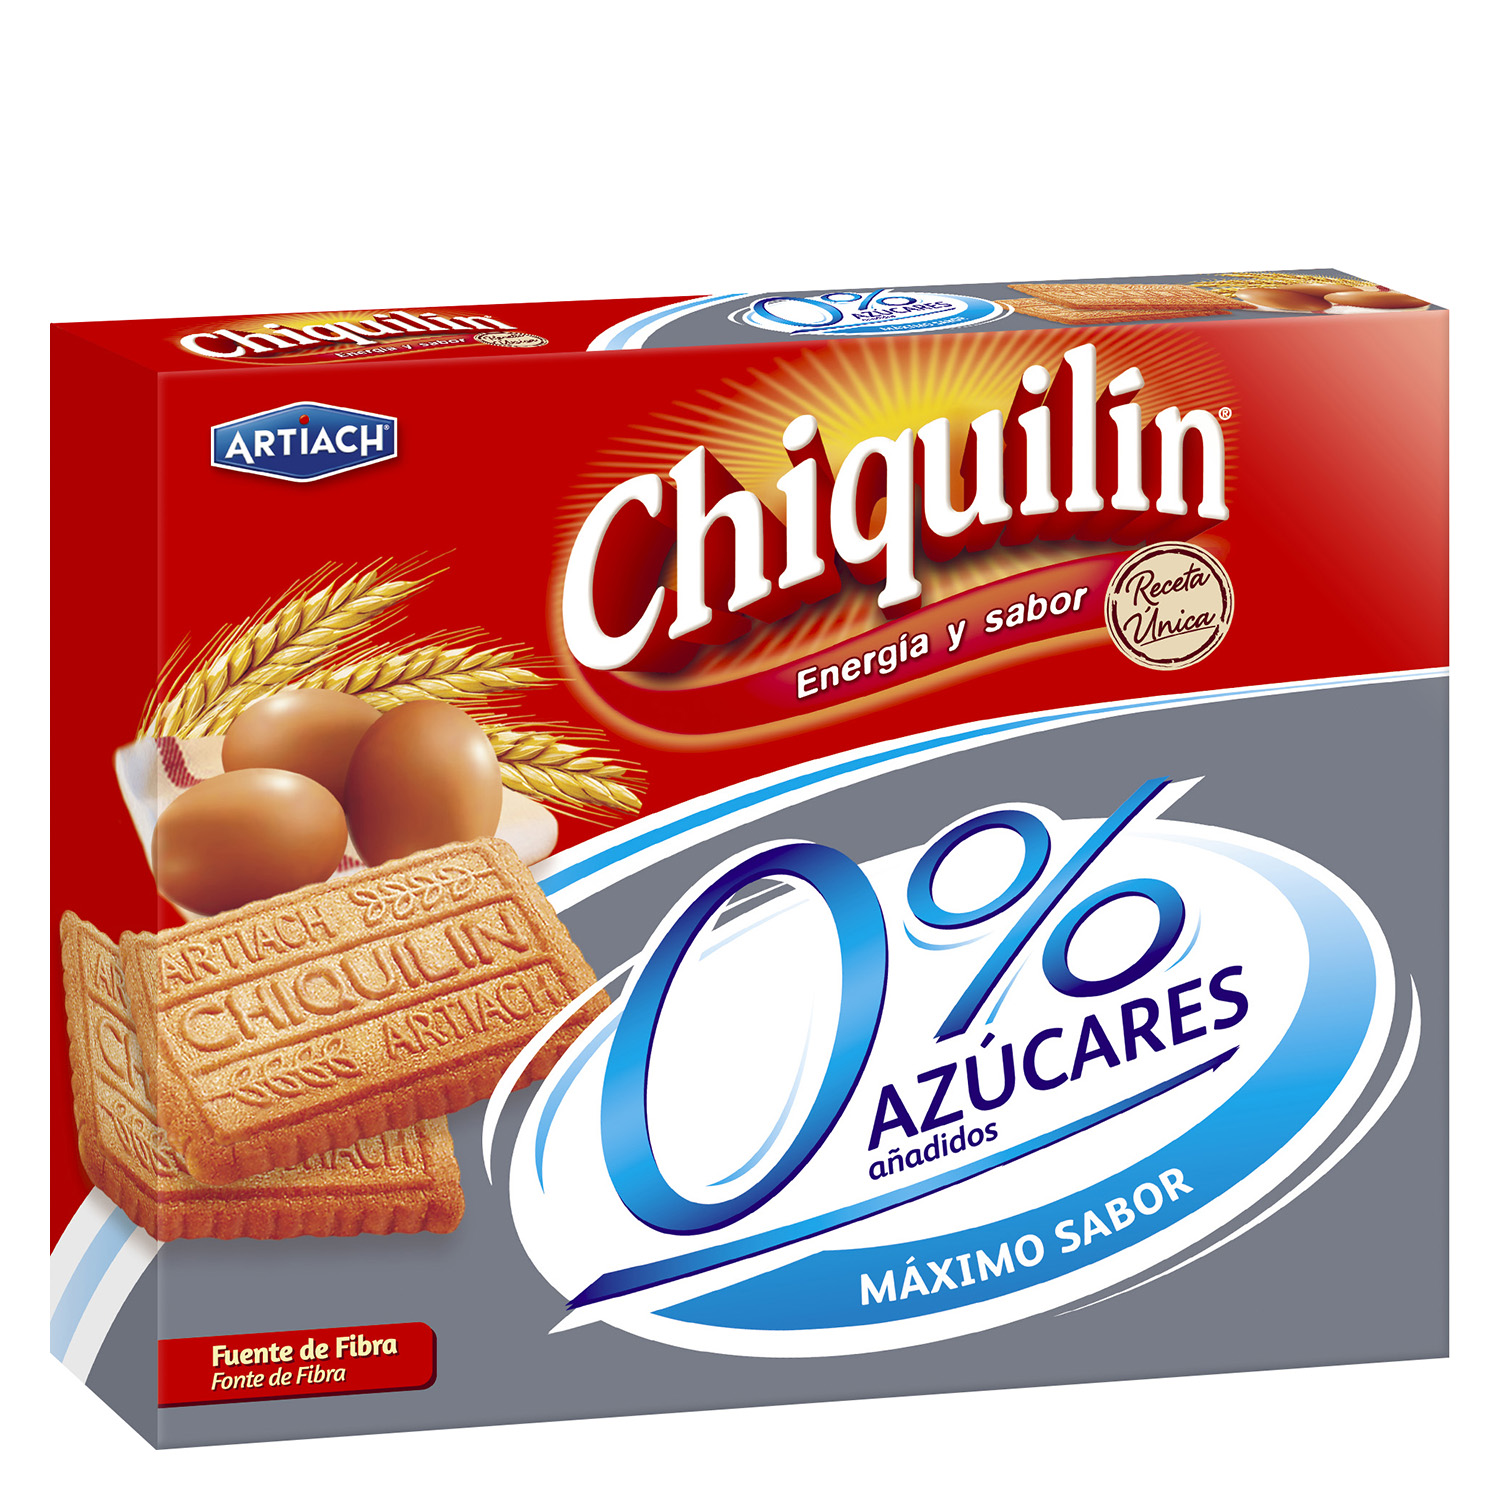 Galletas 0 Azucares Anadidos Chiquilin 525 G Carrefour